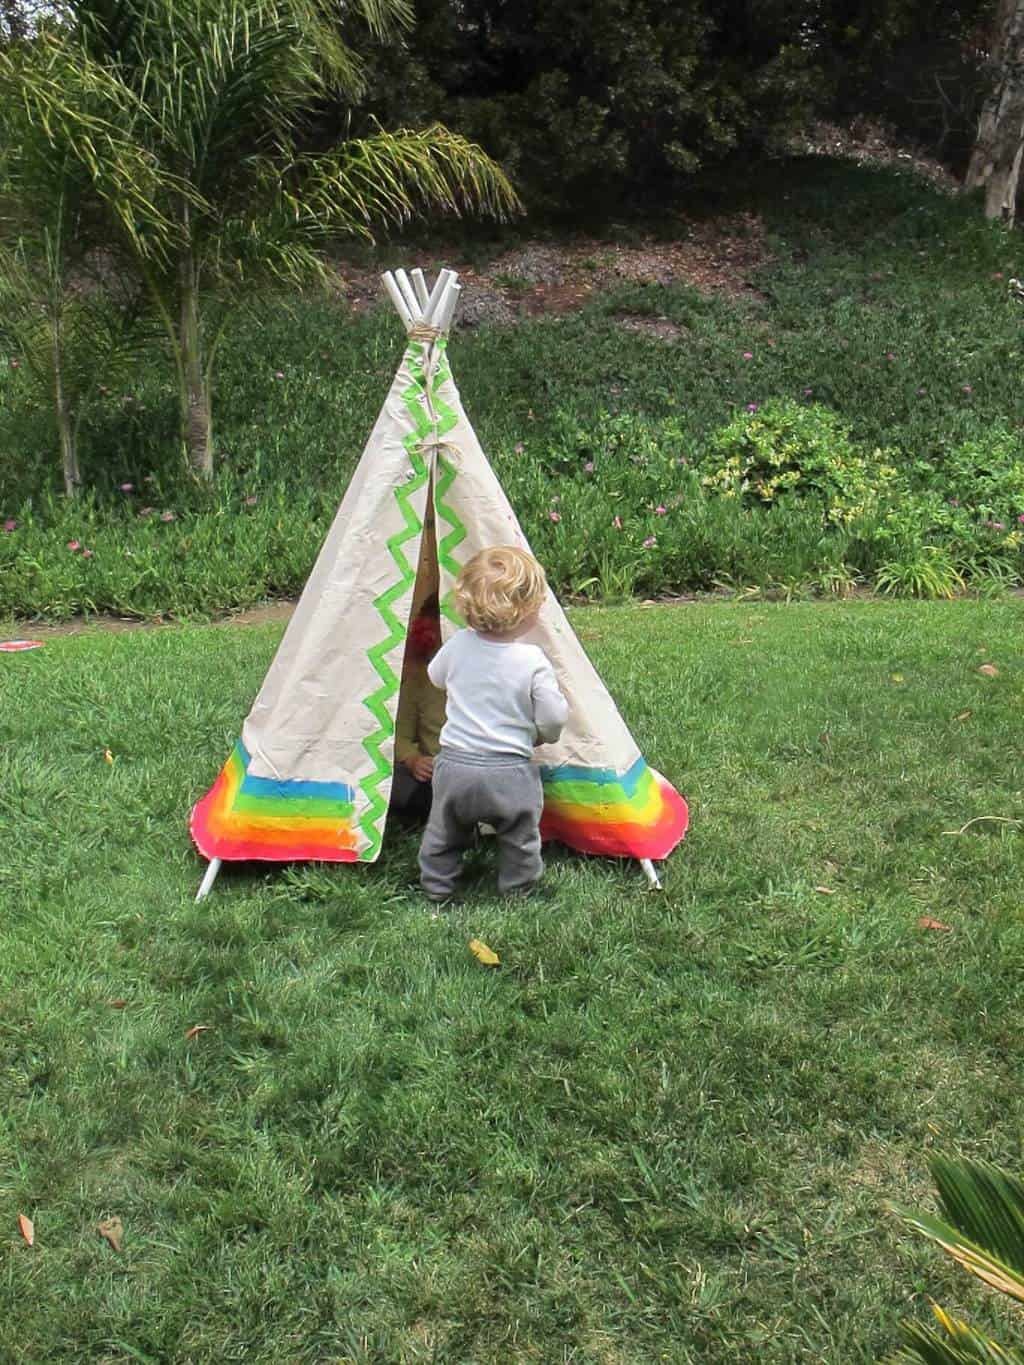 Kid in front of kids play teepee